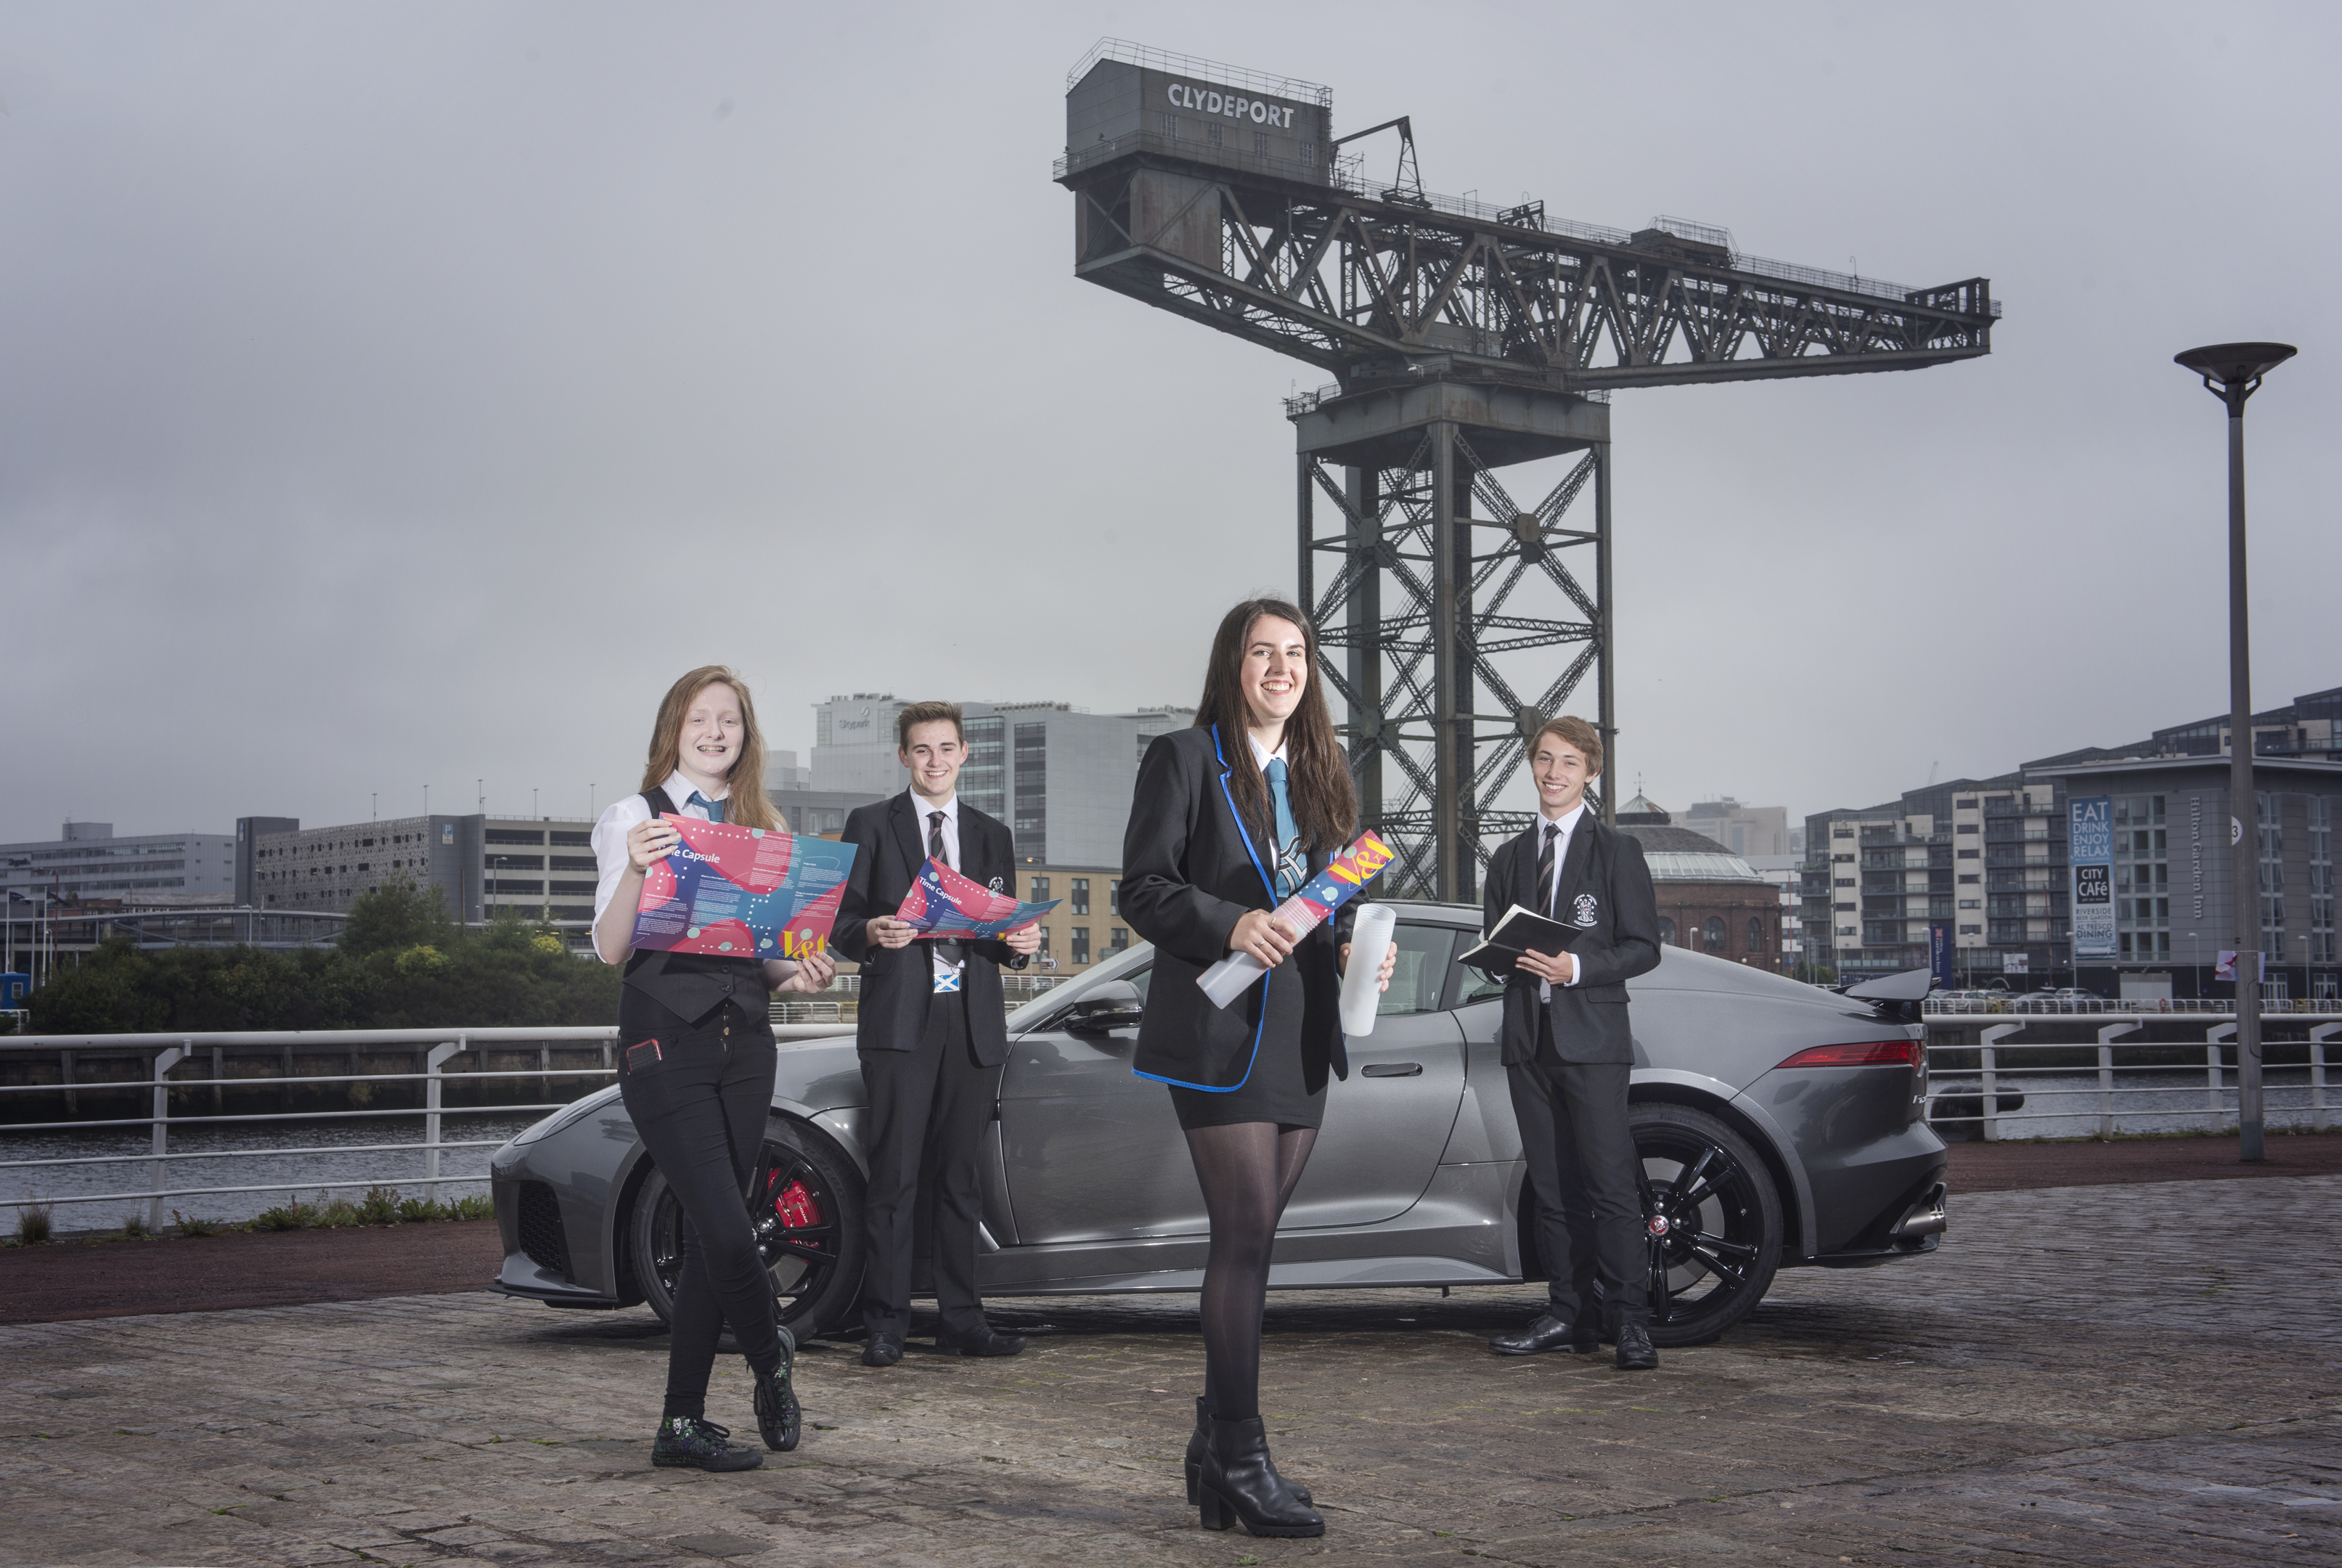 Students (l-r) Phoebe Simpson of Woodmill High School ,Hamish Parkes of Dumfries Academy, Cammie Ross, Woodmill High School and Matthew McBride, Dumfries Academy.